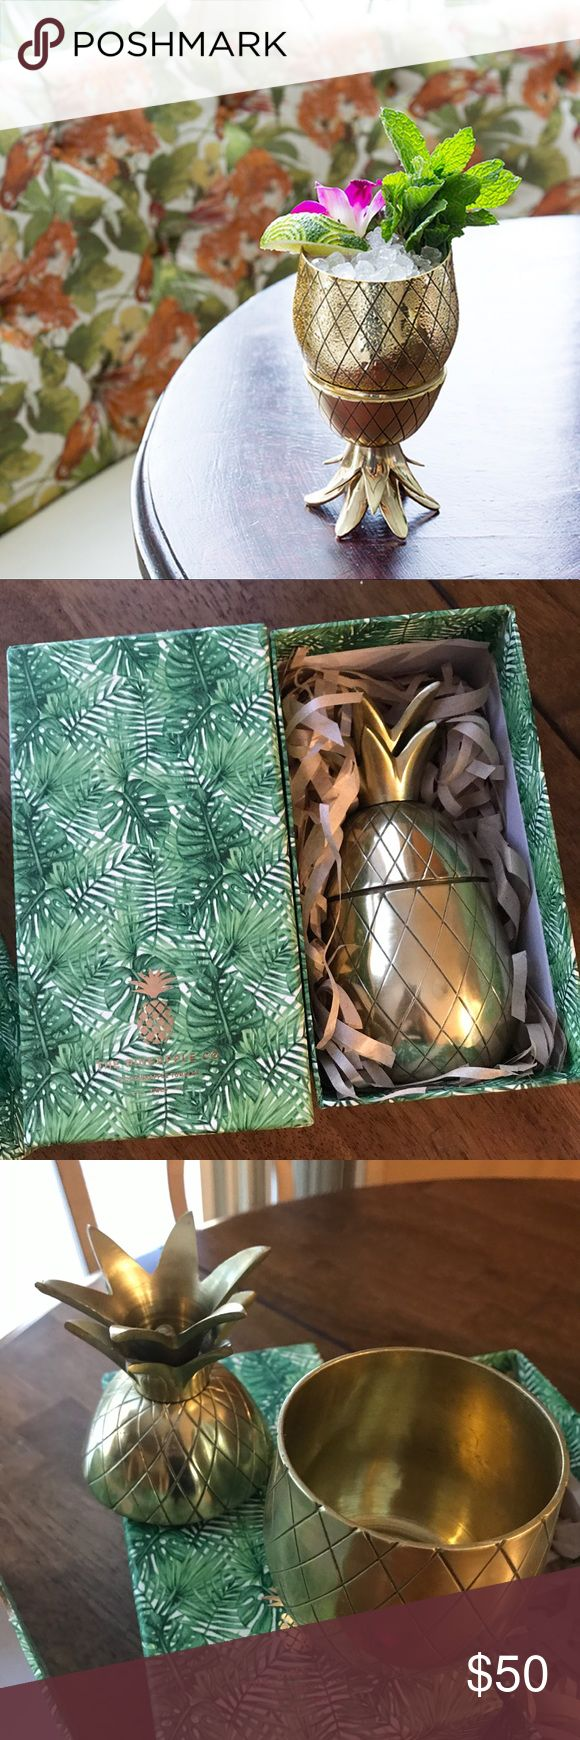 Set of 2 Pineapple Co Tumblers Set of 2 Pineapple Co Cocktail Tumblers  Ordered gold instead of rose gold - one is opened so I could see it the other is still wrapped-  never used and one not even taken out of the original box.   They retail for 35$ each at Nordstrom/Urban   Original box and packing included.  Super cute and fun for cocktail parties 🍹 Nordstrom Accessories